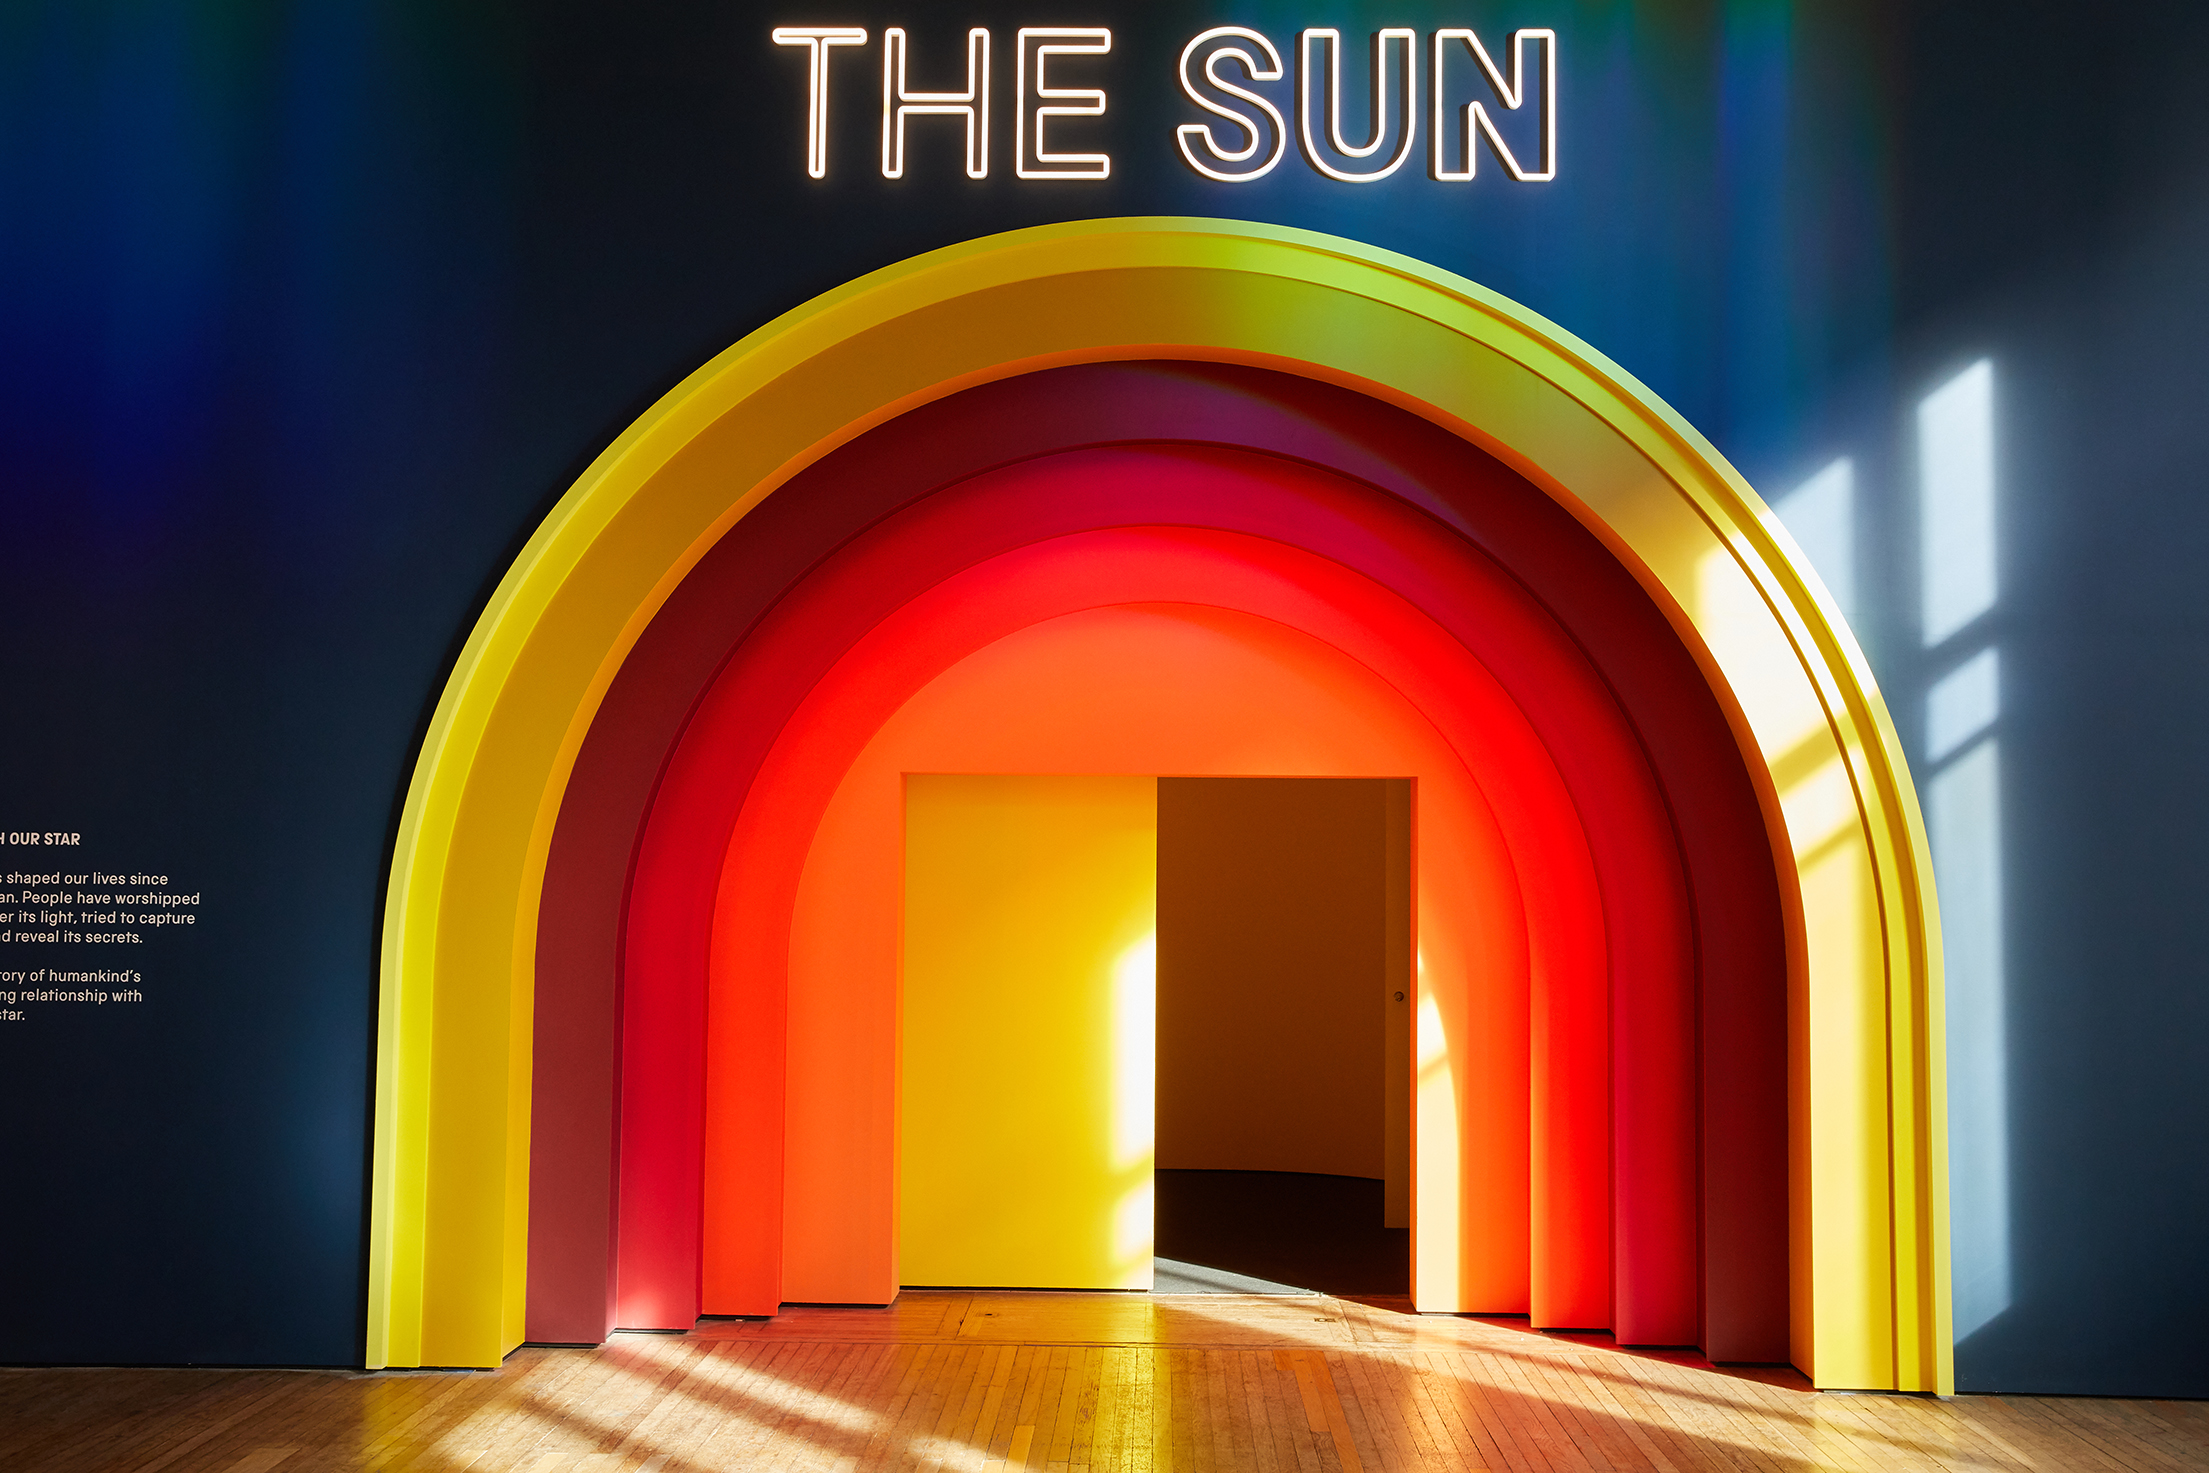 Entrance to The Sun Living With Our Star © Jody Kingzett, courtesy of the Science Museum Group